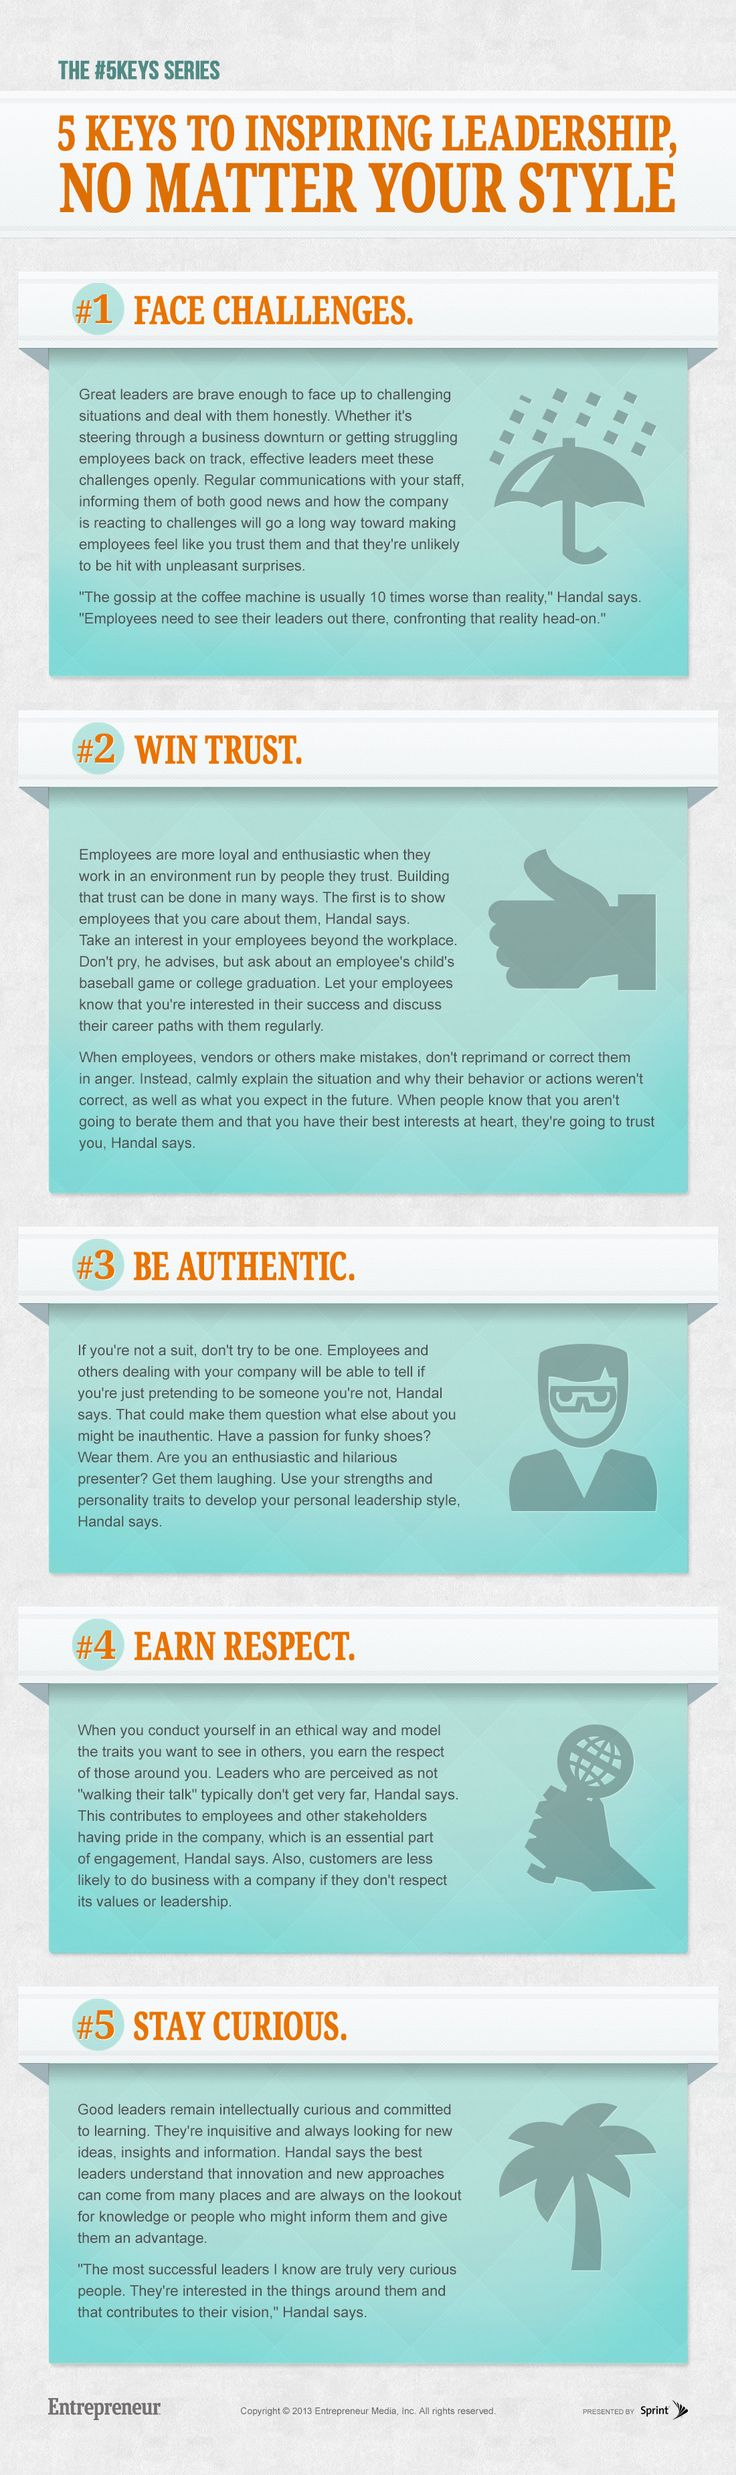 "5 Keys to Inspiring Leadership, No Matter Your Style #Infographic and article by Gwen Moran. ""What really matters is that leaders are able to create enthusiasm, empower their people, instill confidence and be inspiring to the people around them."""